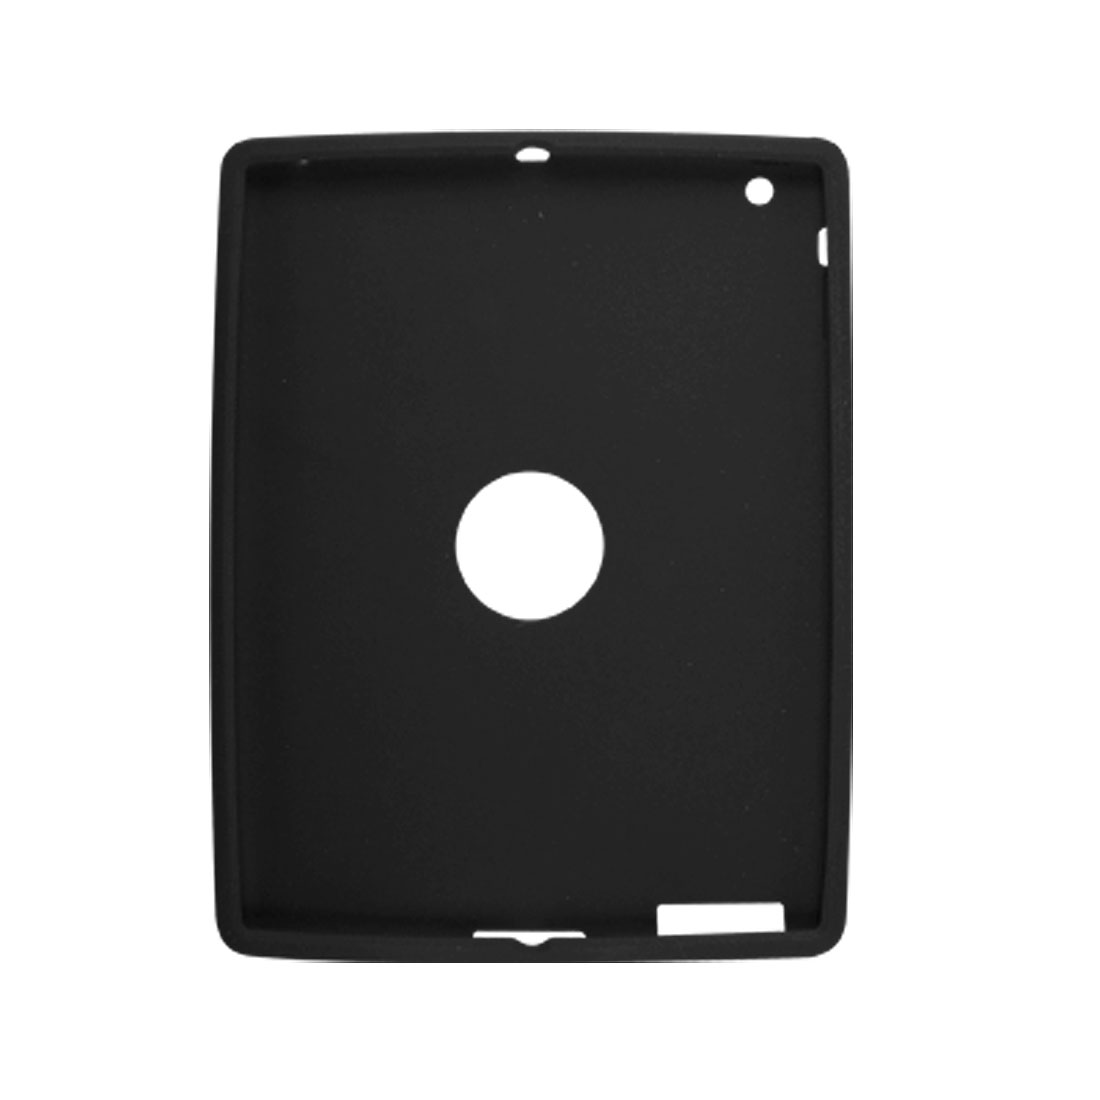 Black Silicone Skin Protector Case Guard for Apple iPad 2G